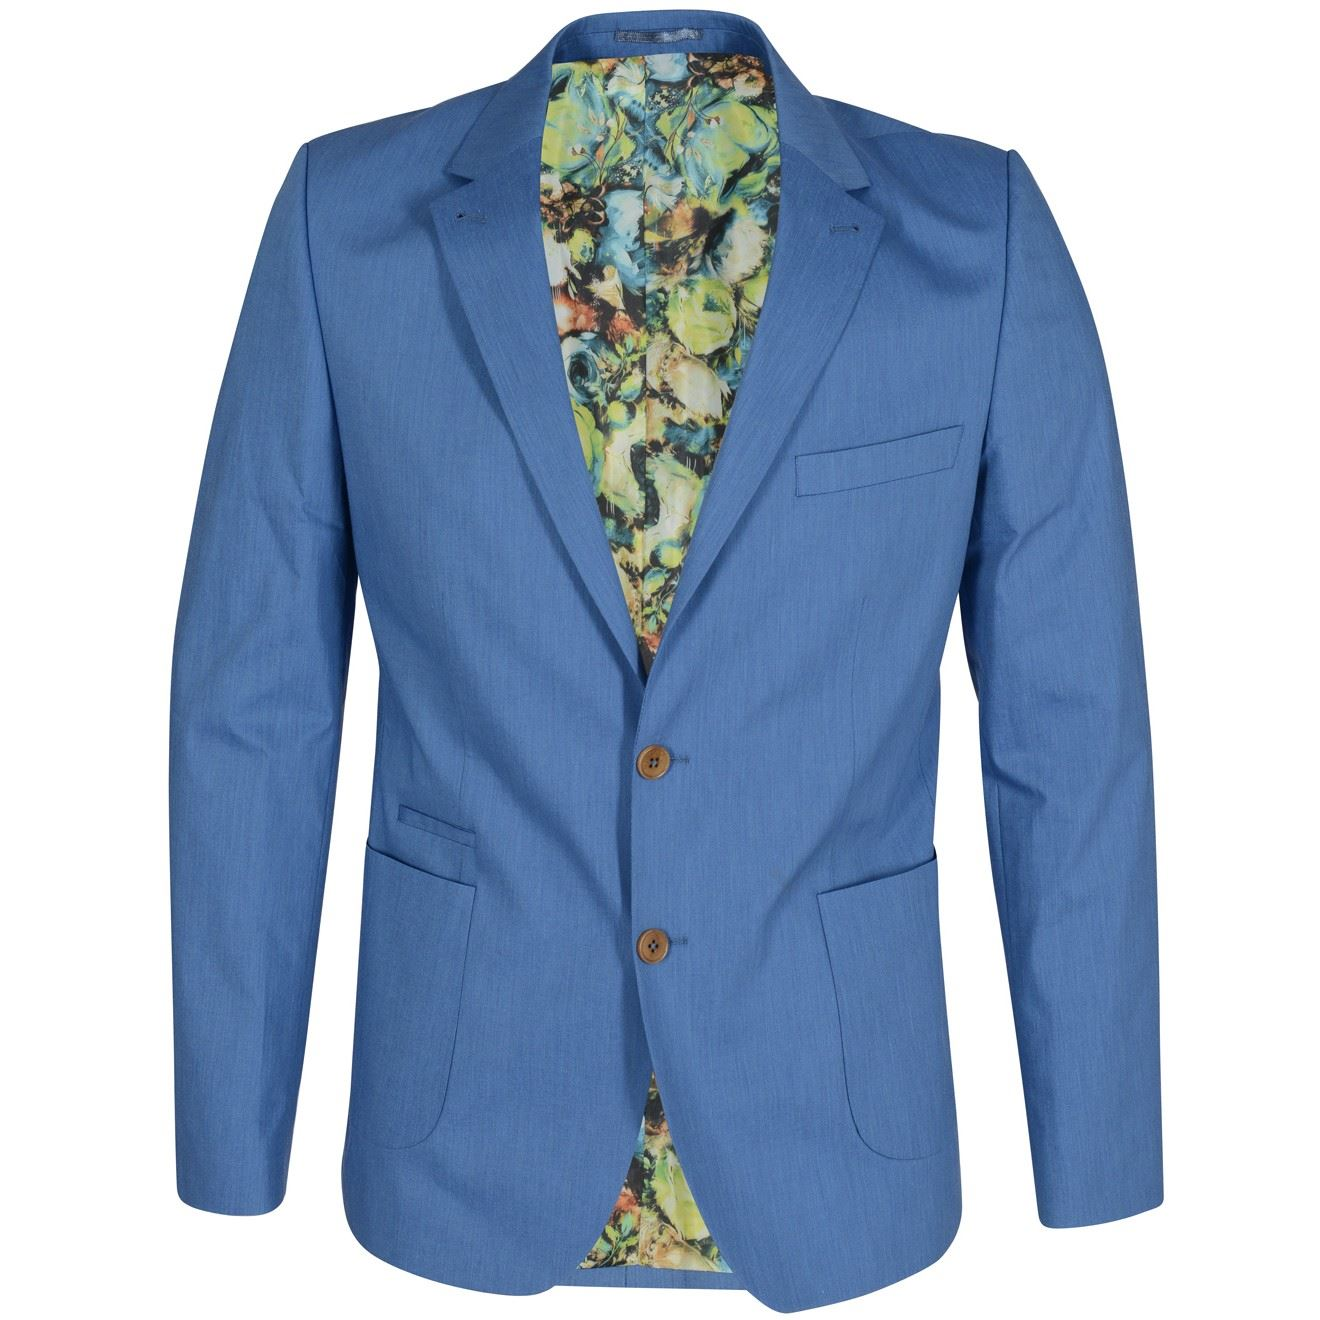 Guide London Jk3098 3 Piece Suit In A Stretch Spring Blue